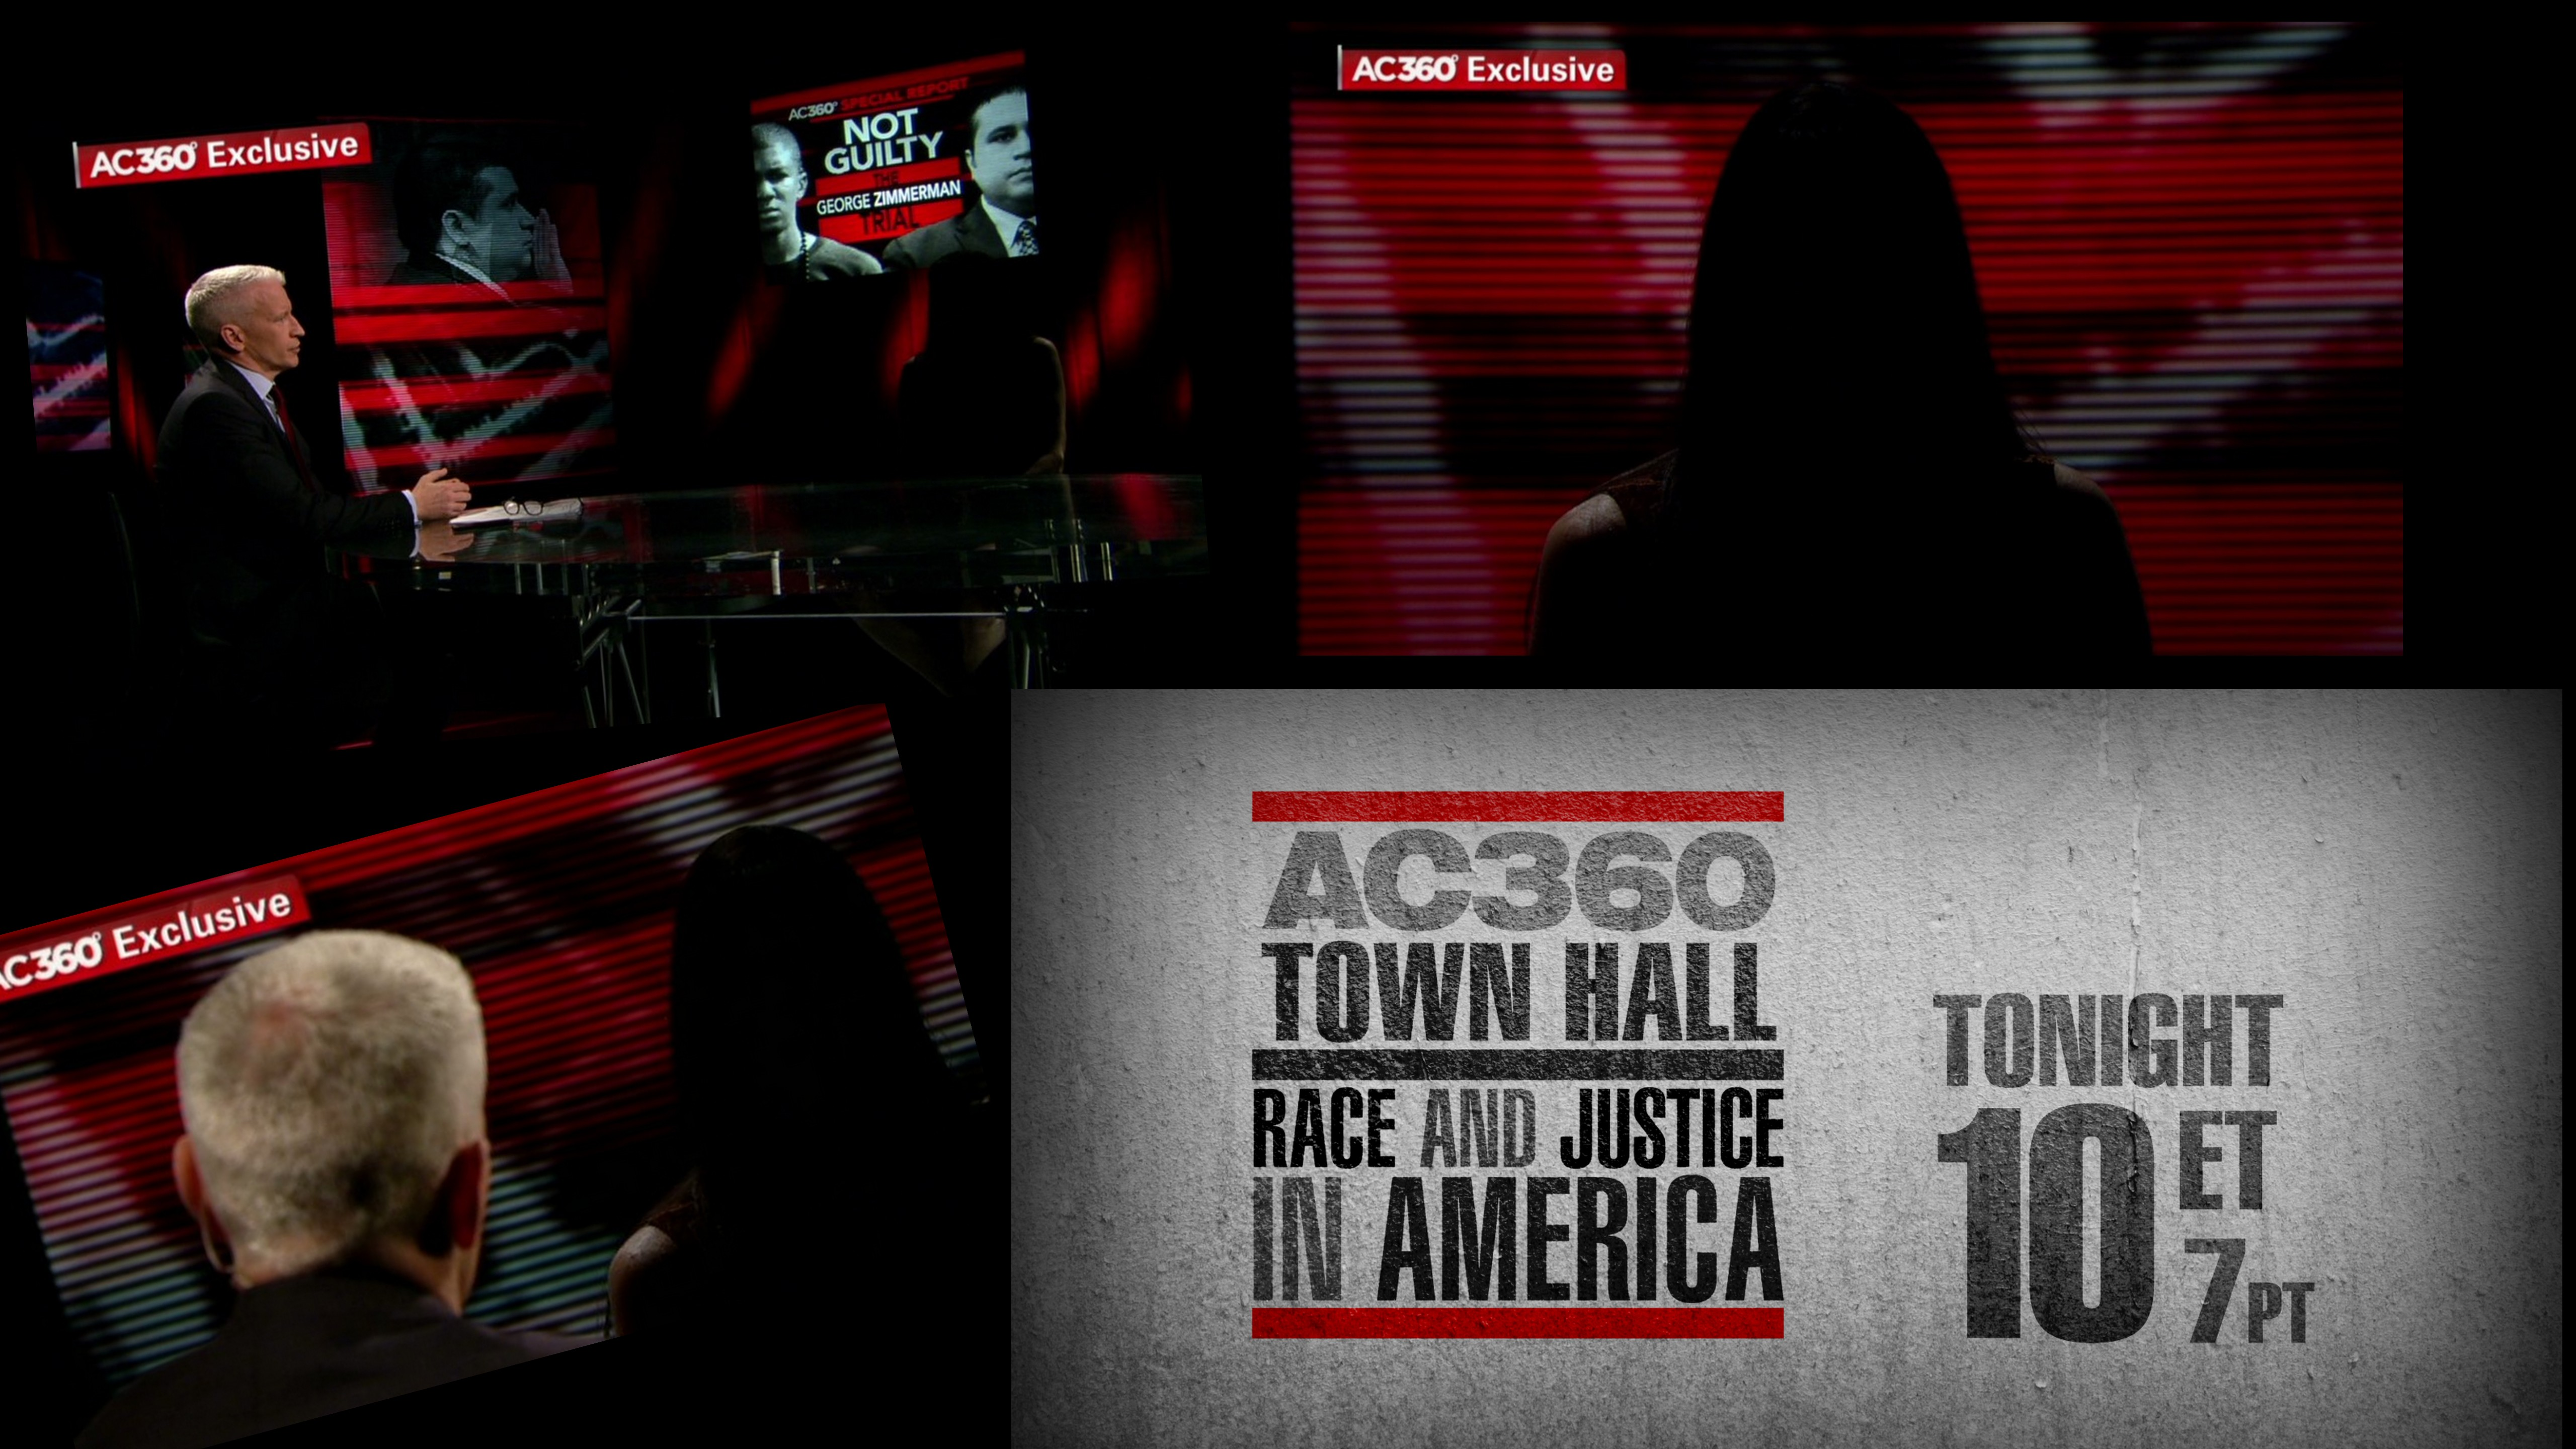 Tonight on AC360: Part 2 of Juror B37 interview, 'Race and Justice in America' Town Hall